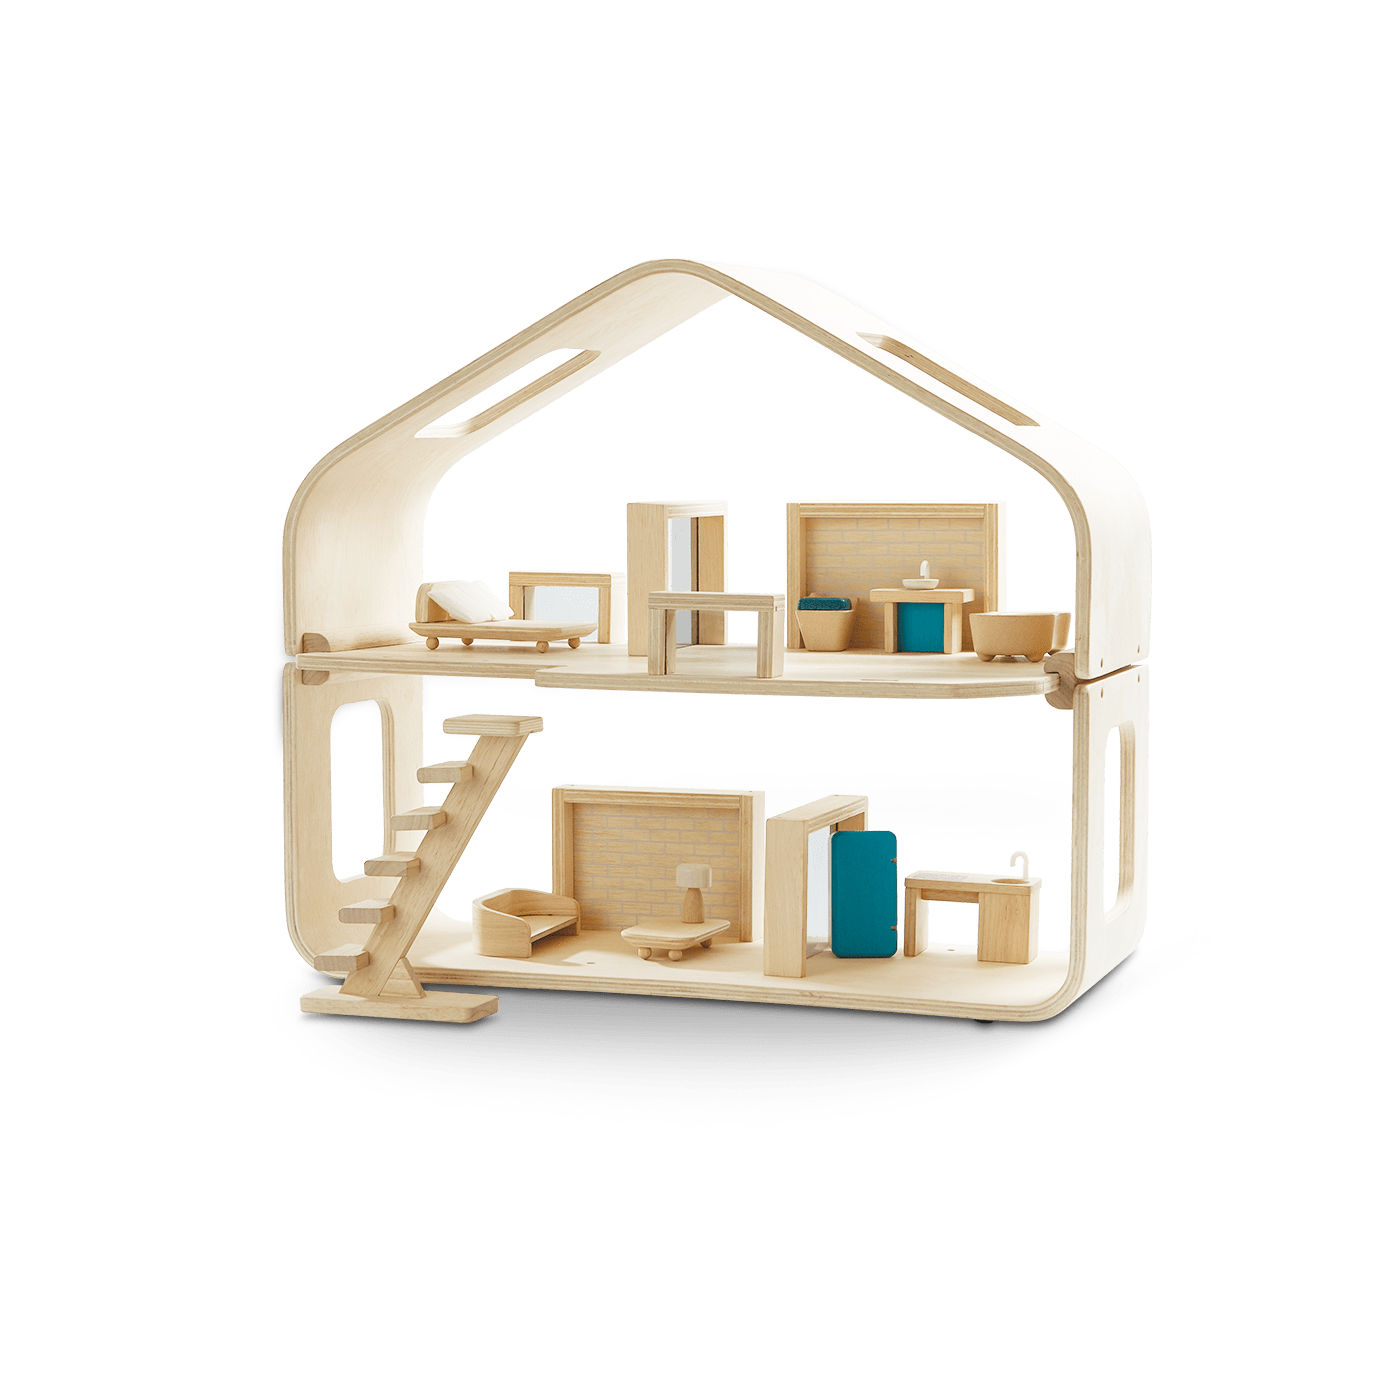 7122_PlanToys_CONTEMPORARY_DOLLHOUSE_Pretend_Play_Imagination_Coordination_Language_and_Communications_Social_Fine_Motor_3yrs_Wooden_toys_Education_toys_Safety_Toys_Non-toxic_0.png